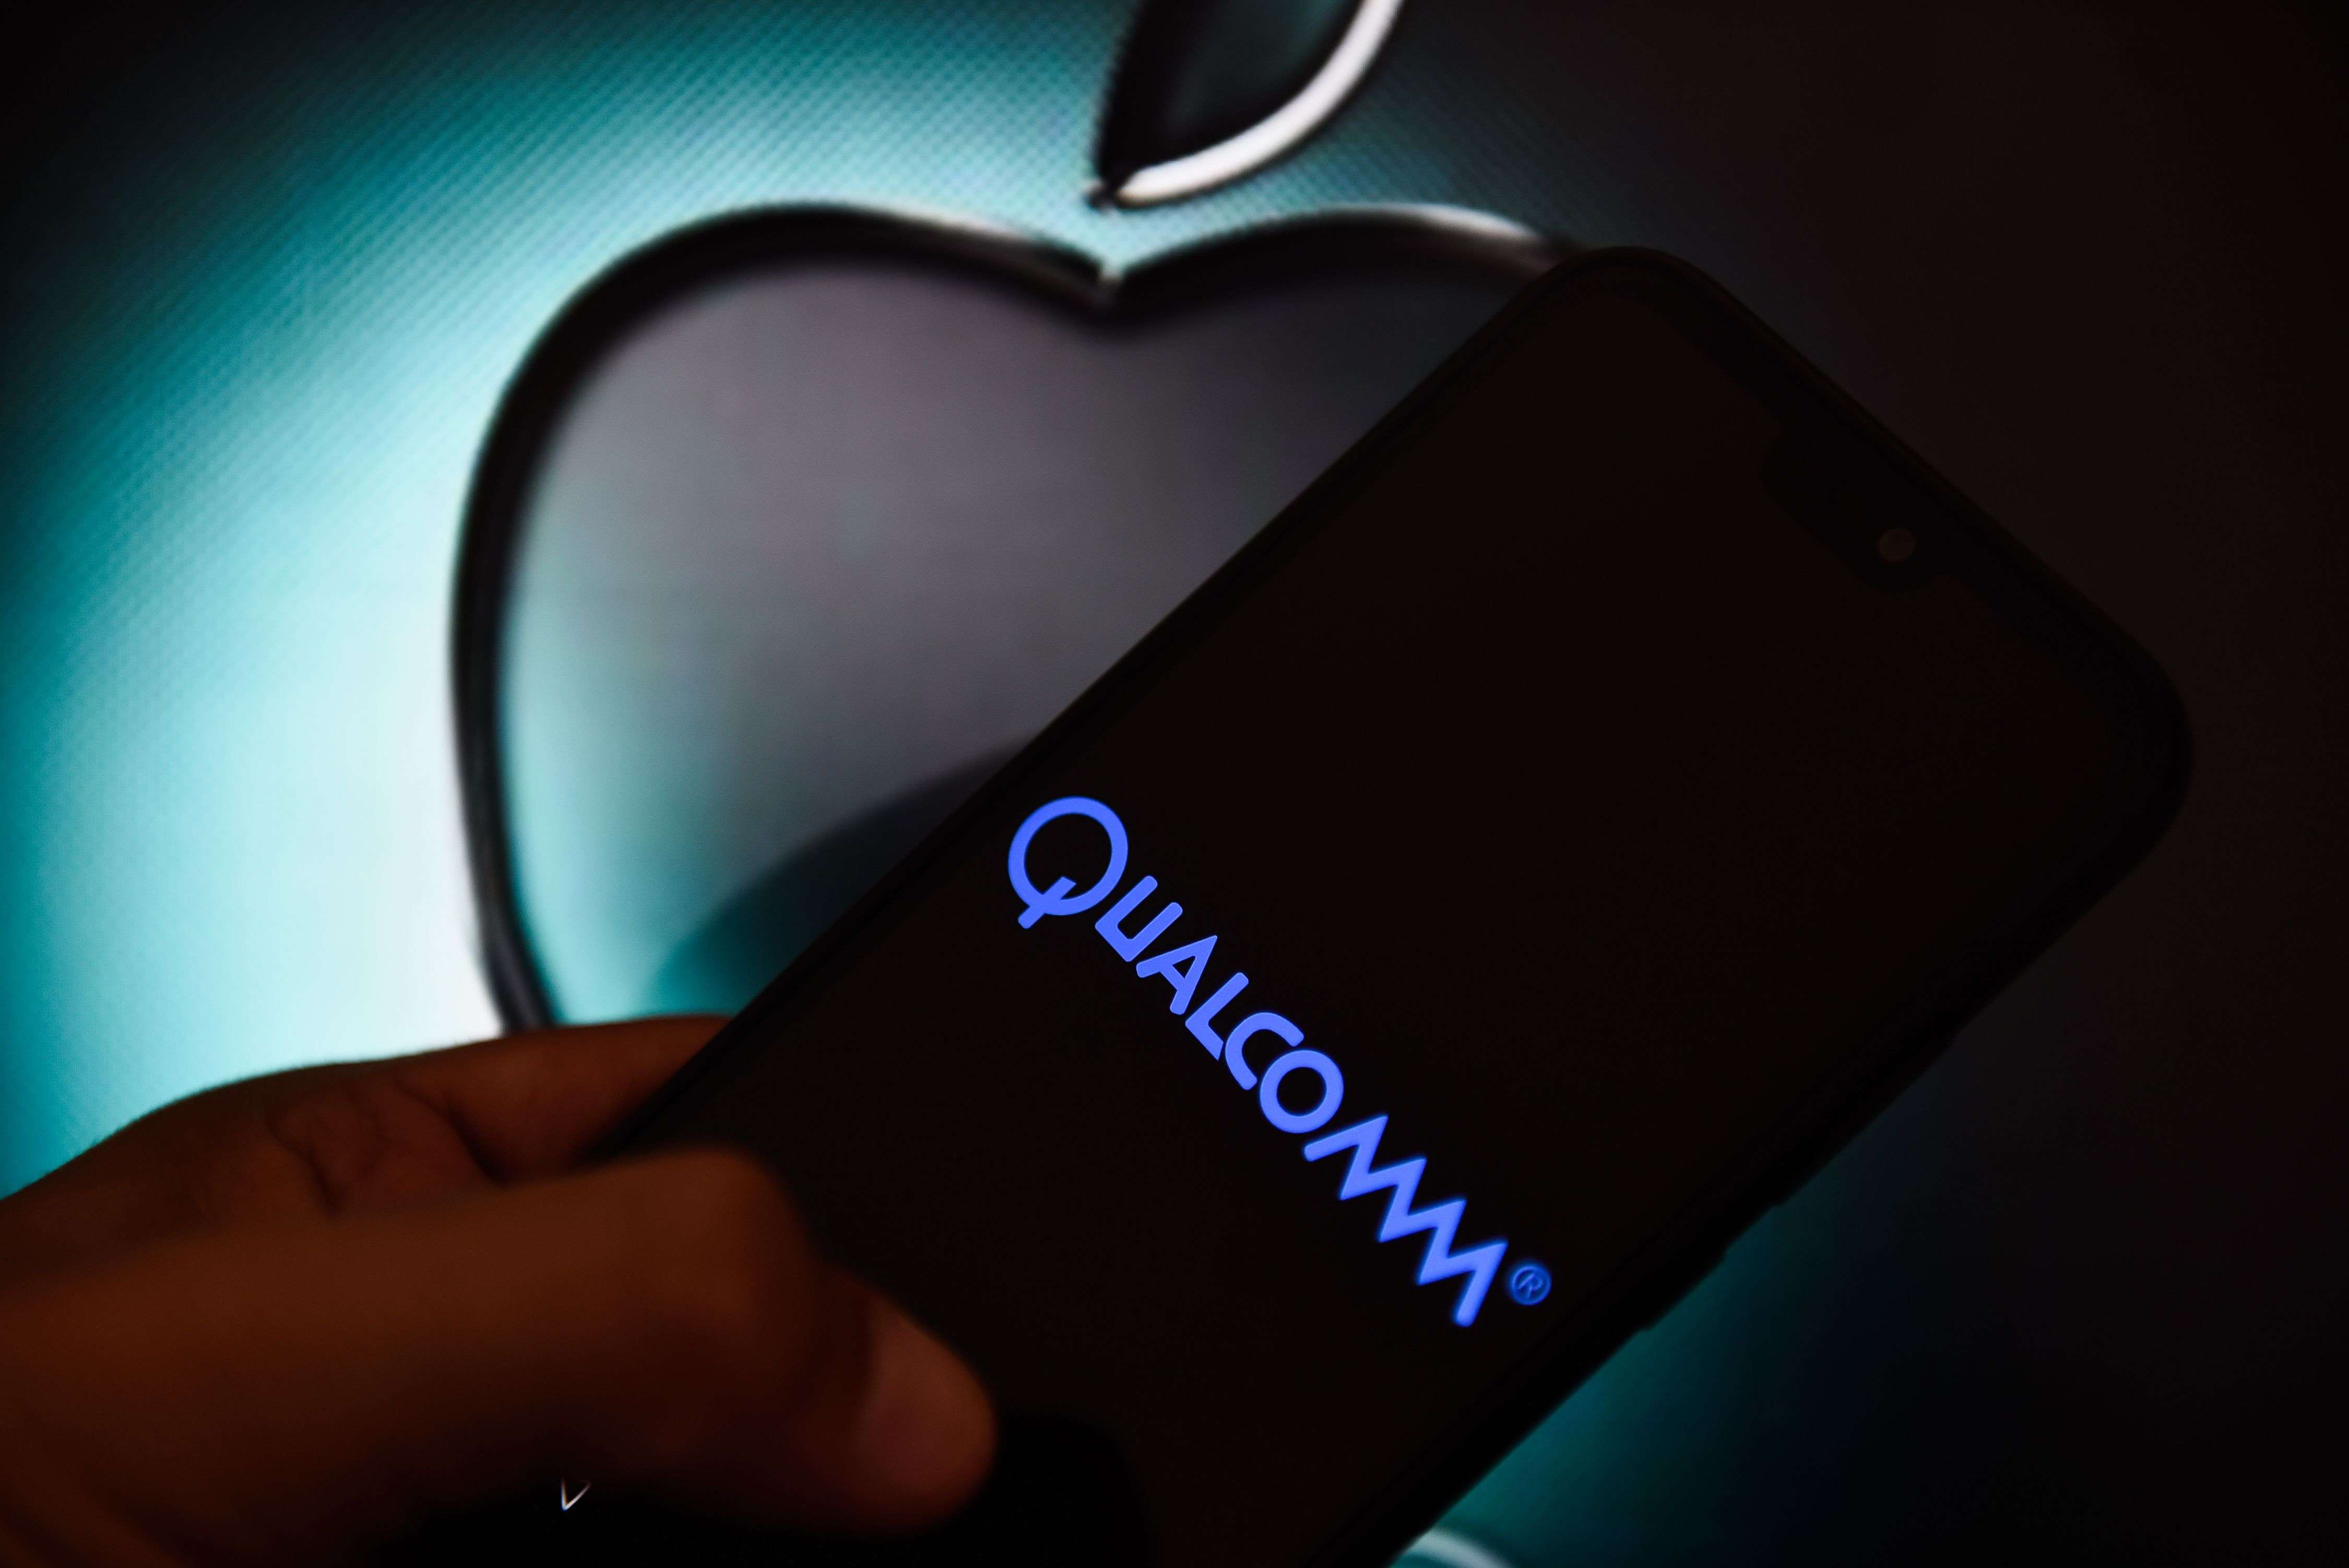 Qualcomm expects at least $4.5 billion from Apple settlement